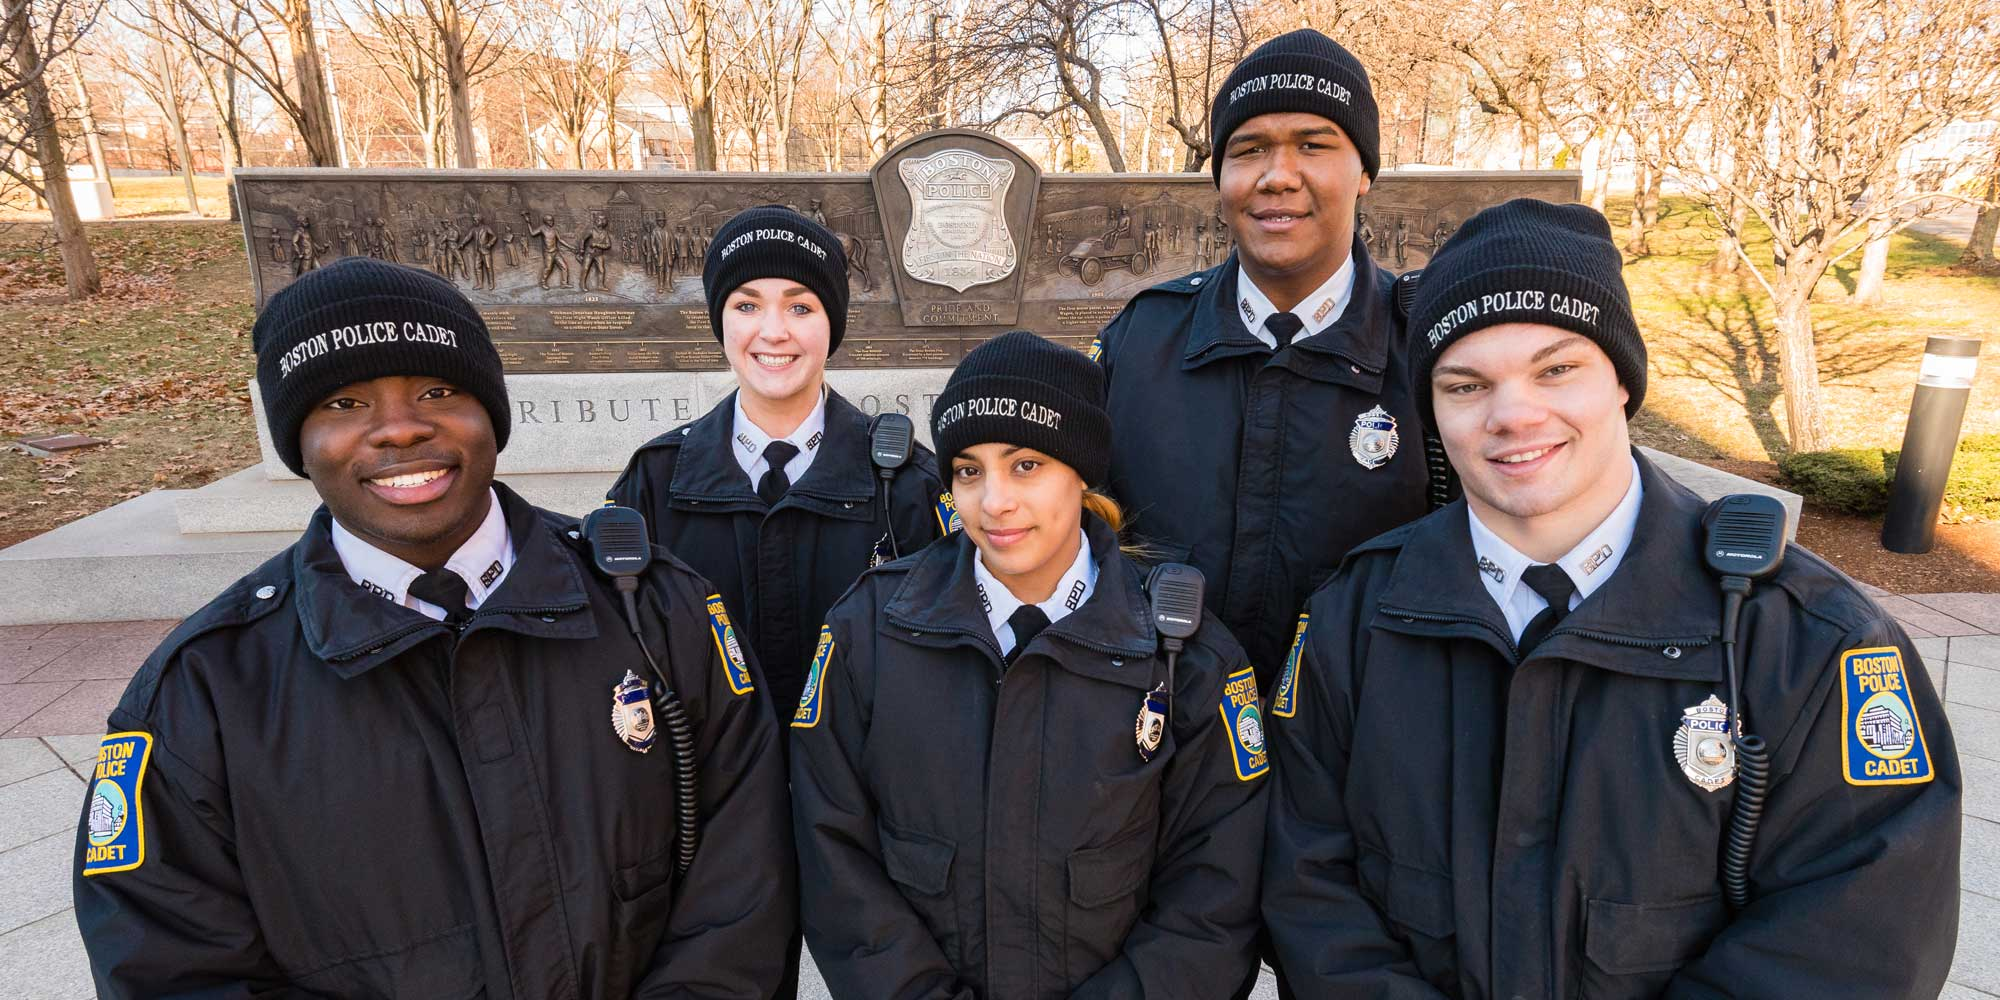 Image for cadets from the boston police department's cadet program